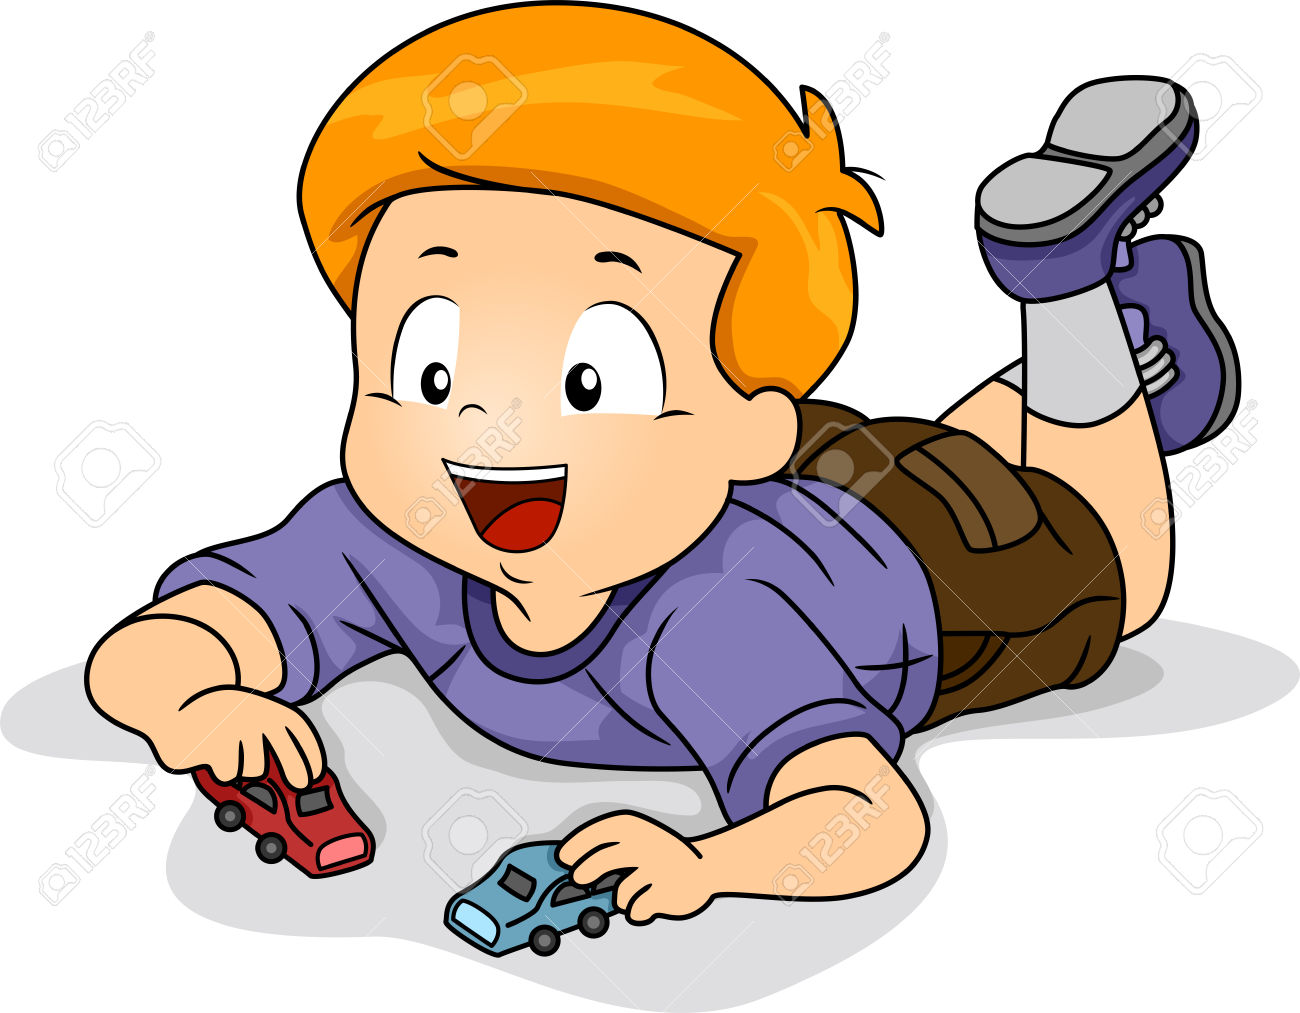 Free clipart images-children being messy with toys clip art library Kids Free Clipart | Free download best Kids Free Clipart on ... clip art library